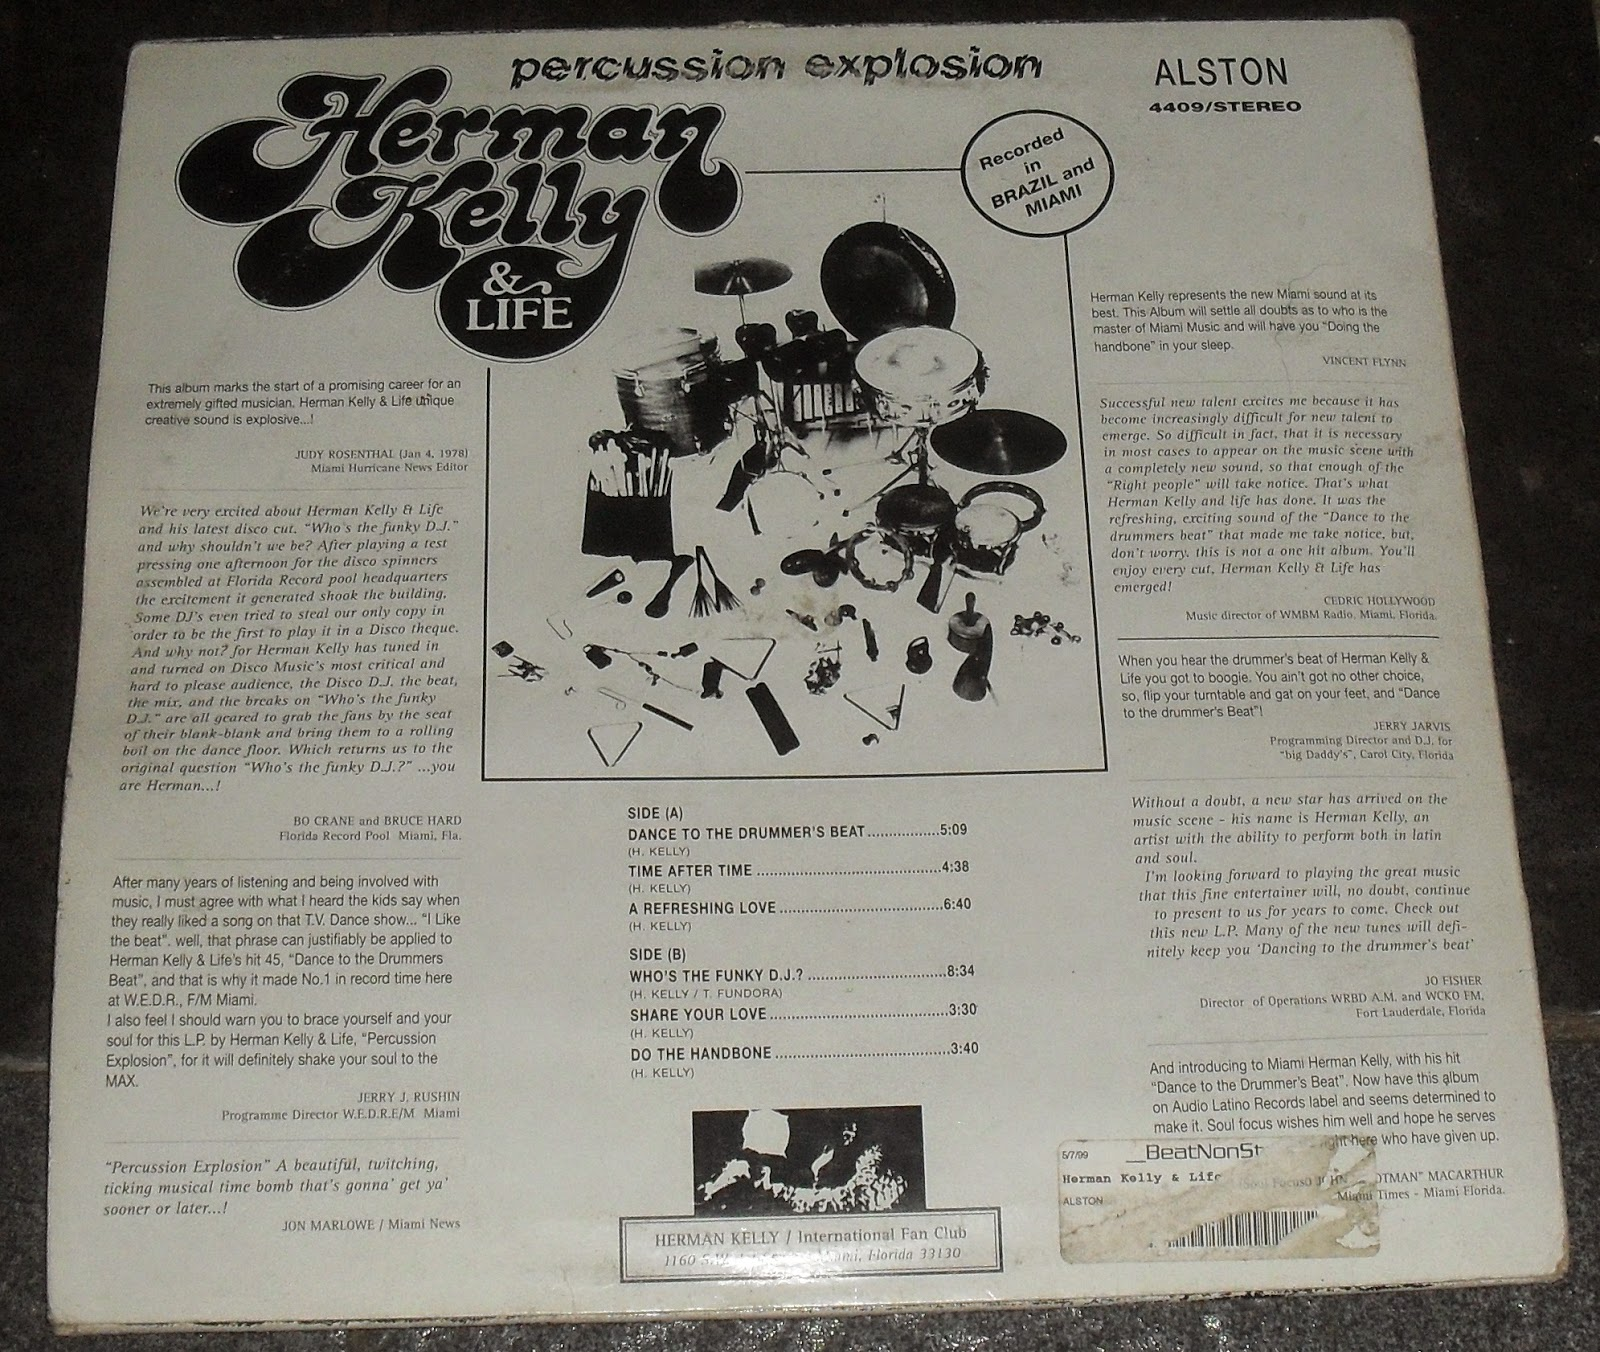 Herman Kelly Life Dance To The Drummer Beat Whos the funky DJ